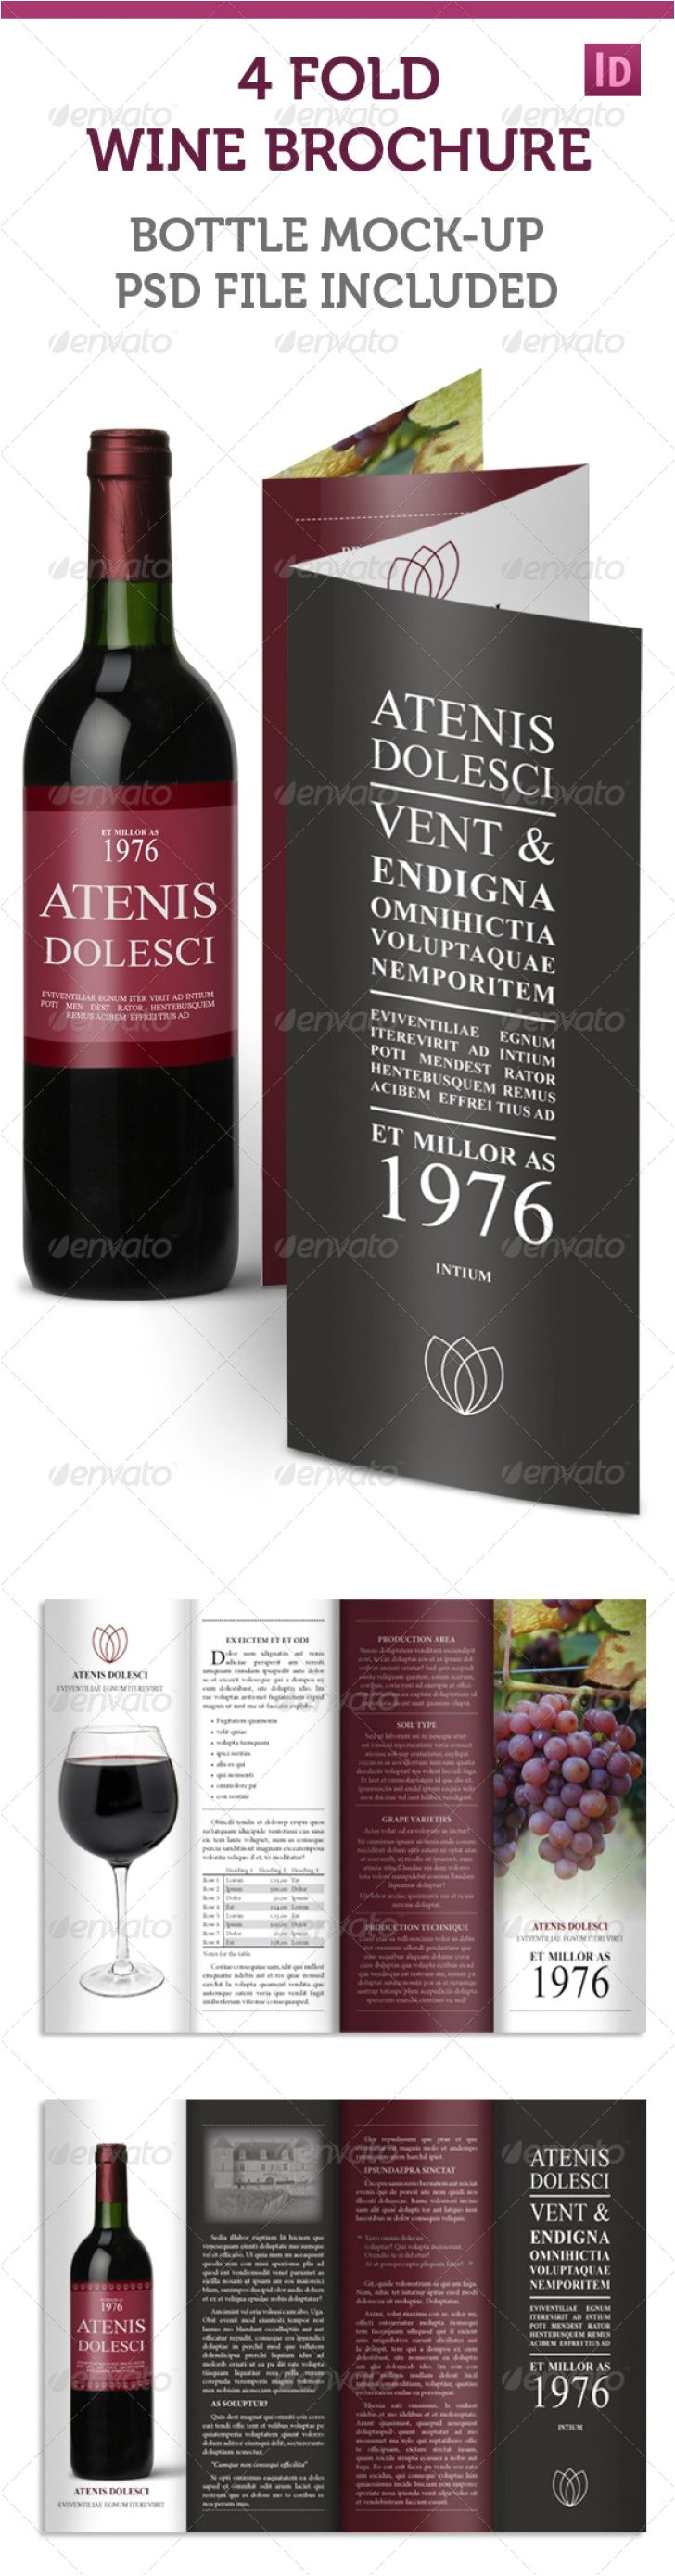 Wine Brochure Template Free Willamette Valley Glass Various High Professional